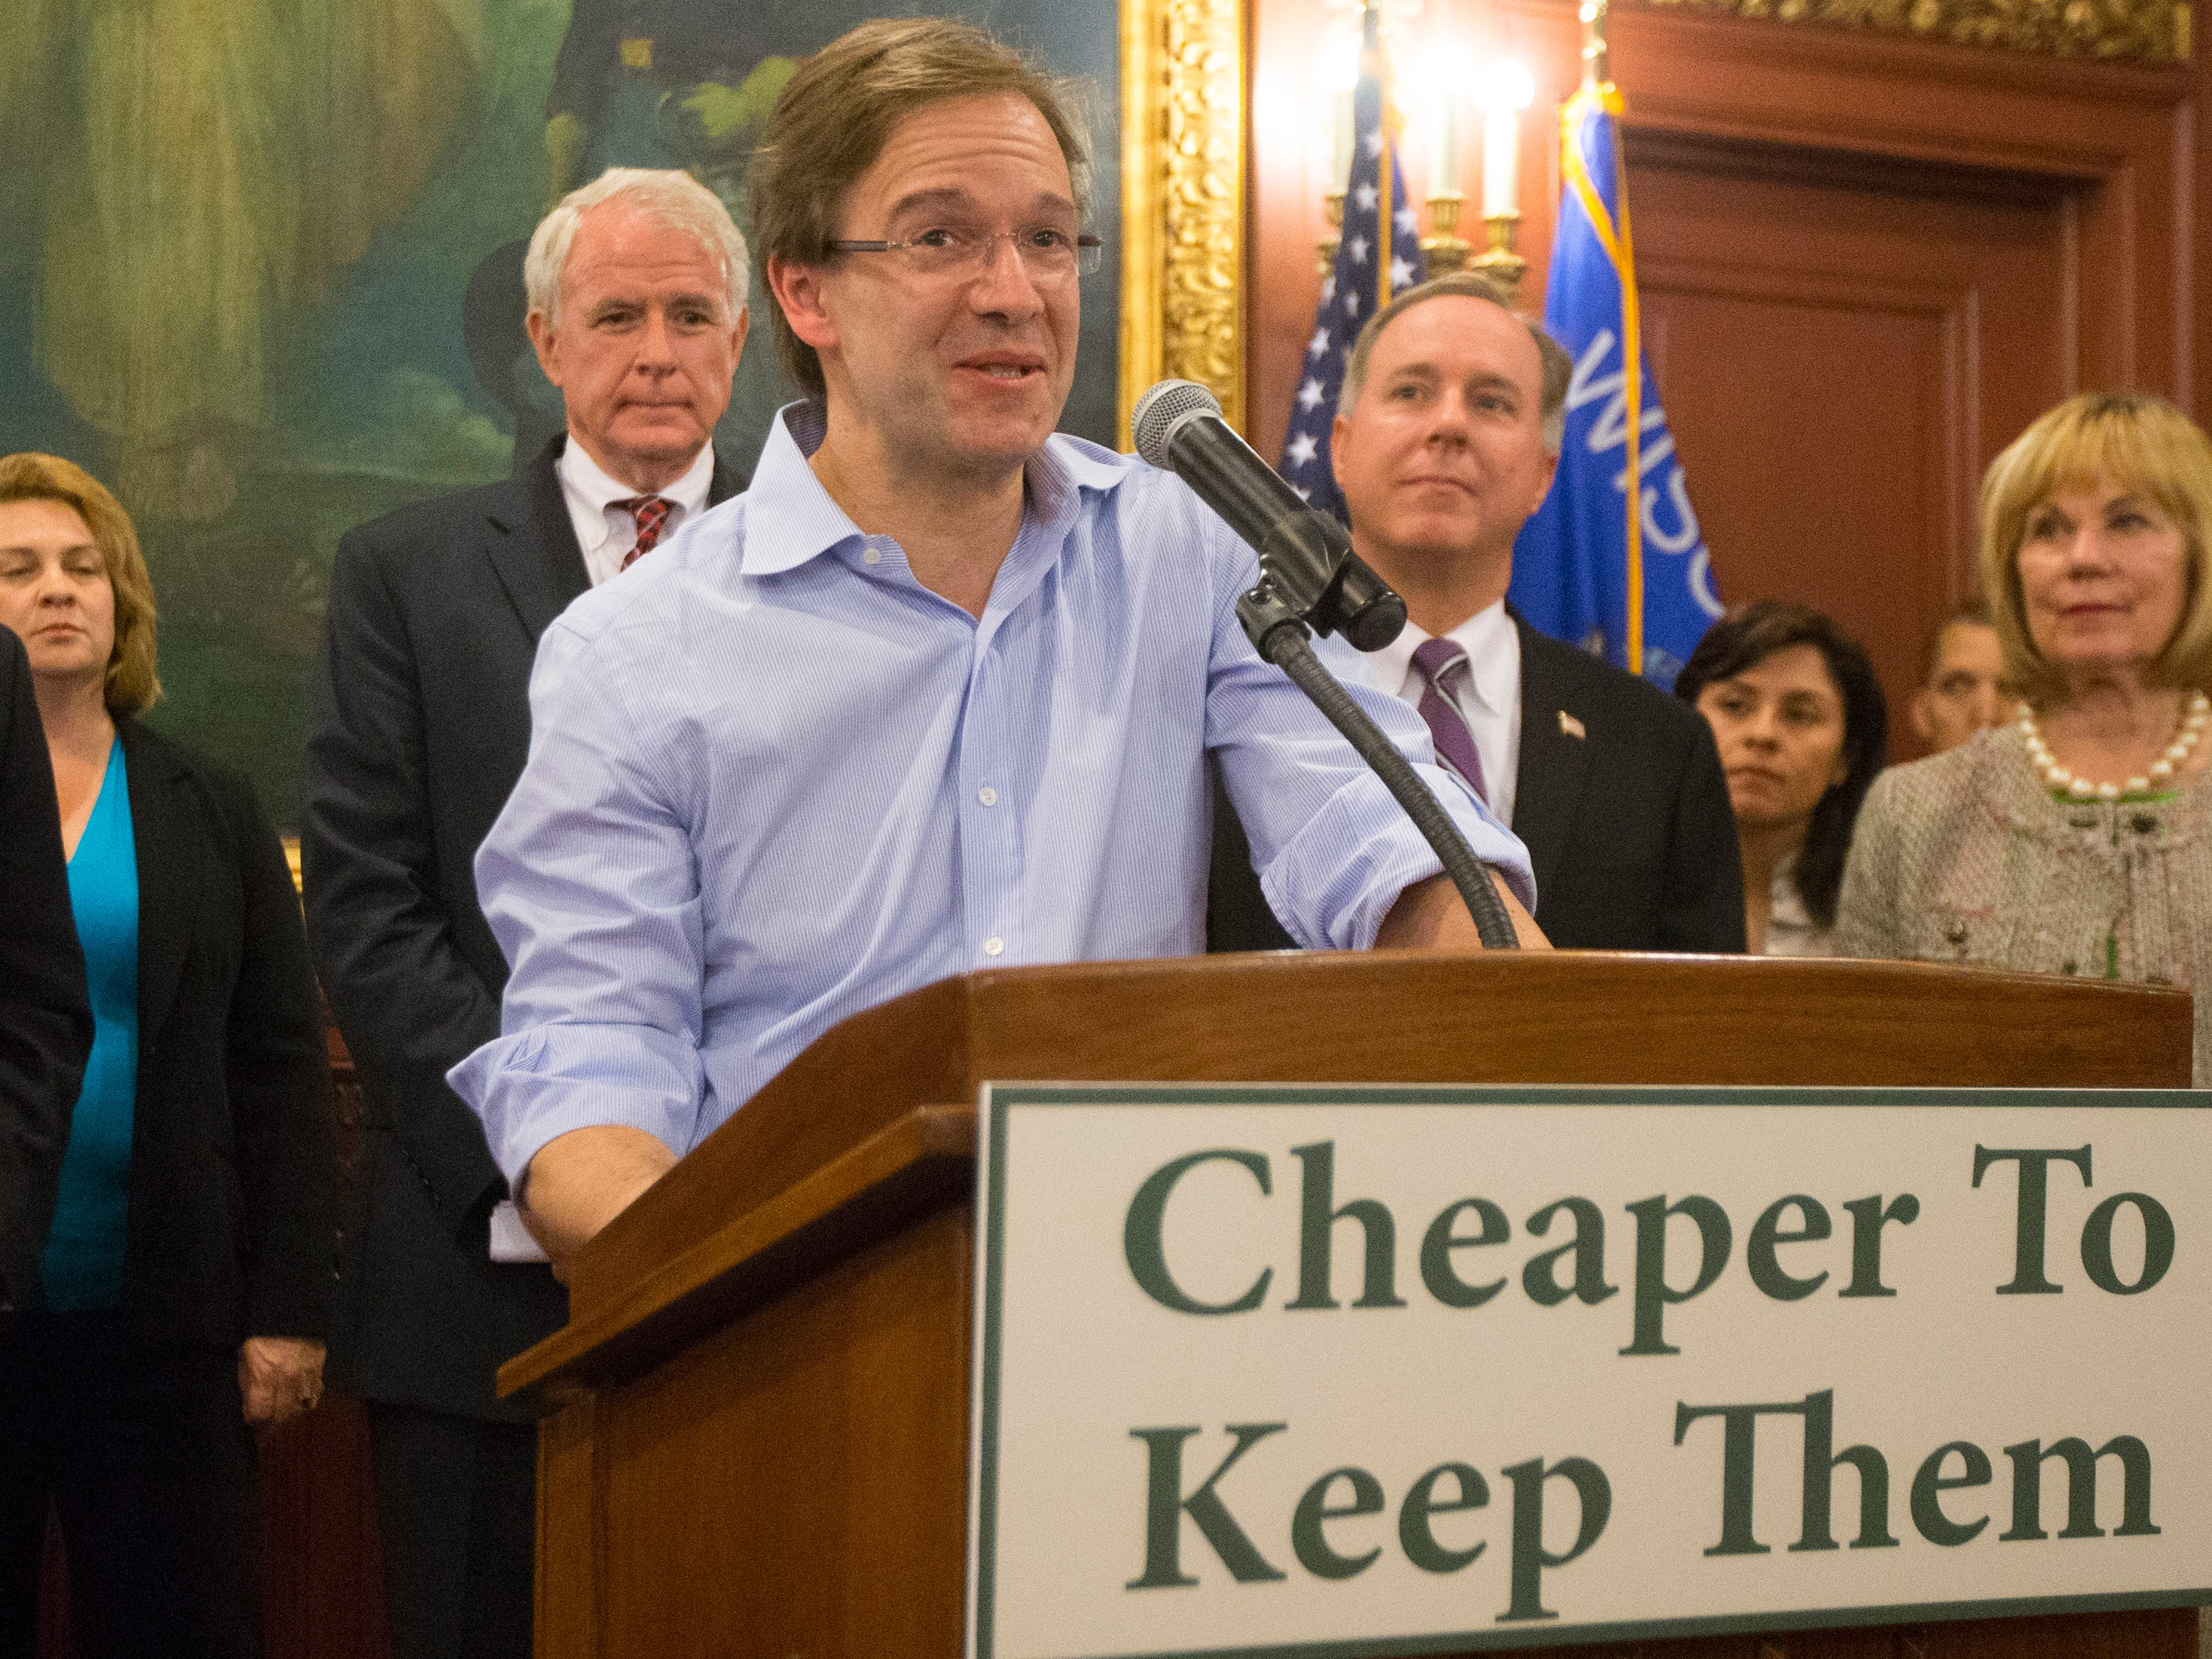 2015: Milwaukee County Executive  Chris Abele speaks about the financing plans for the proposed $500 million Milwaukee Bucks arena in Milwaukee during a news conference at the state Capital in Madison.